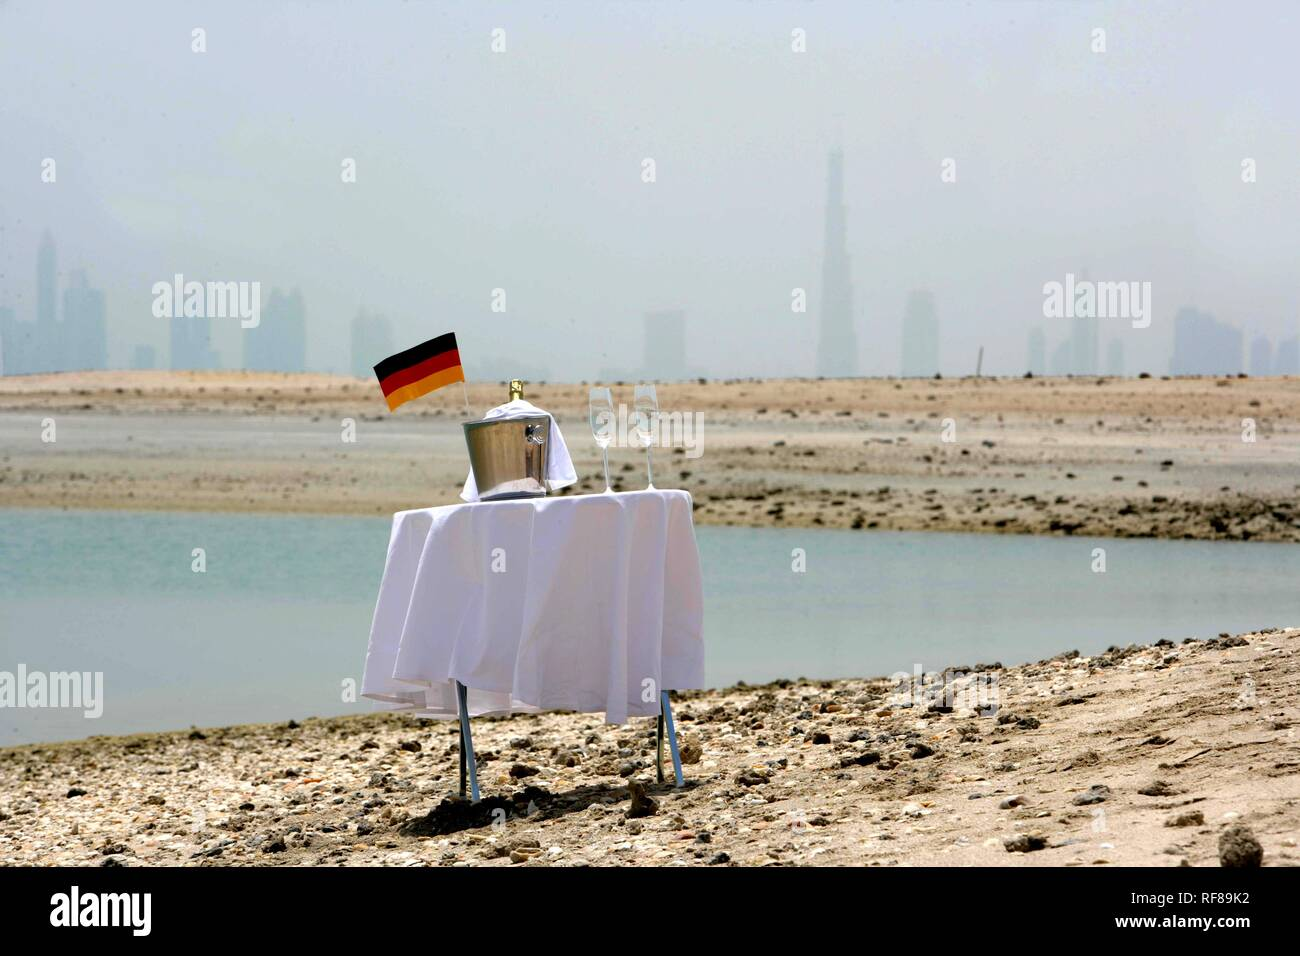 Map Of Germany For Sale.Germany Island One Of The Artificial Islands On A Man Made World